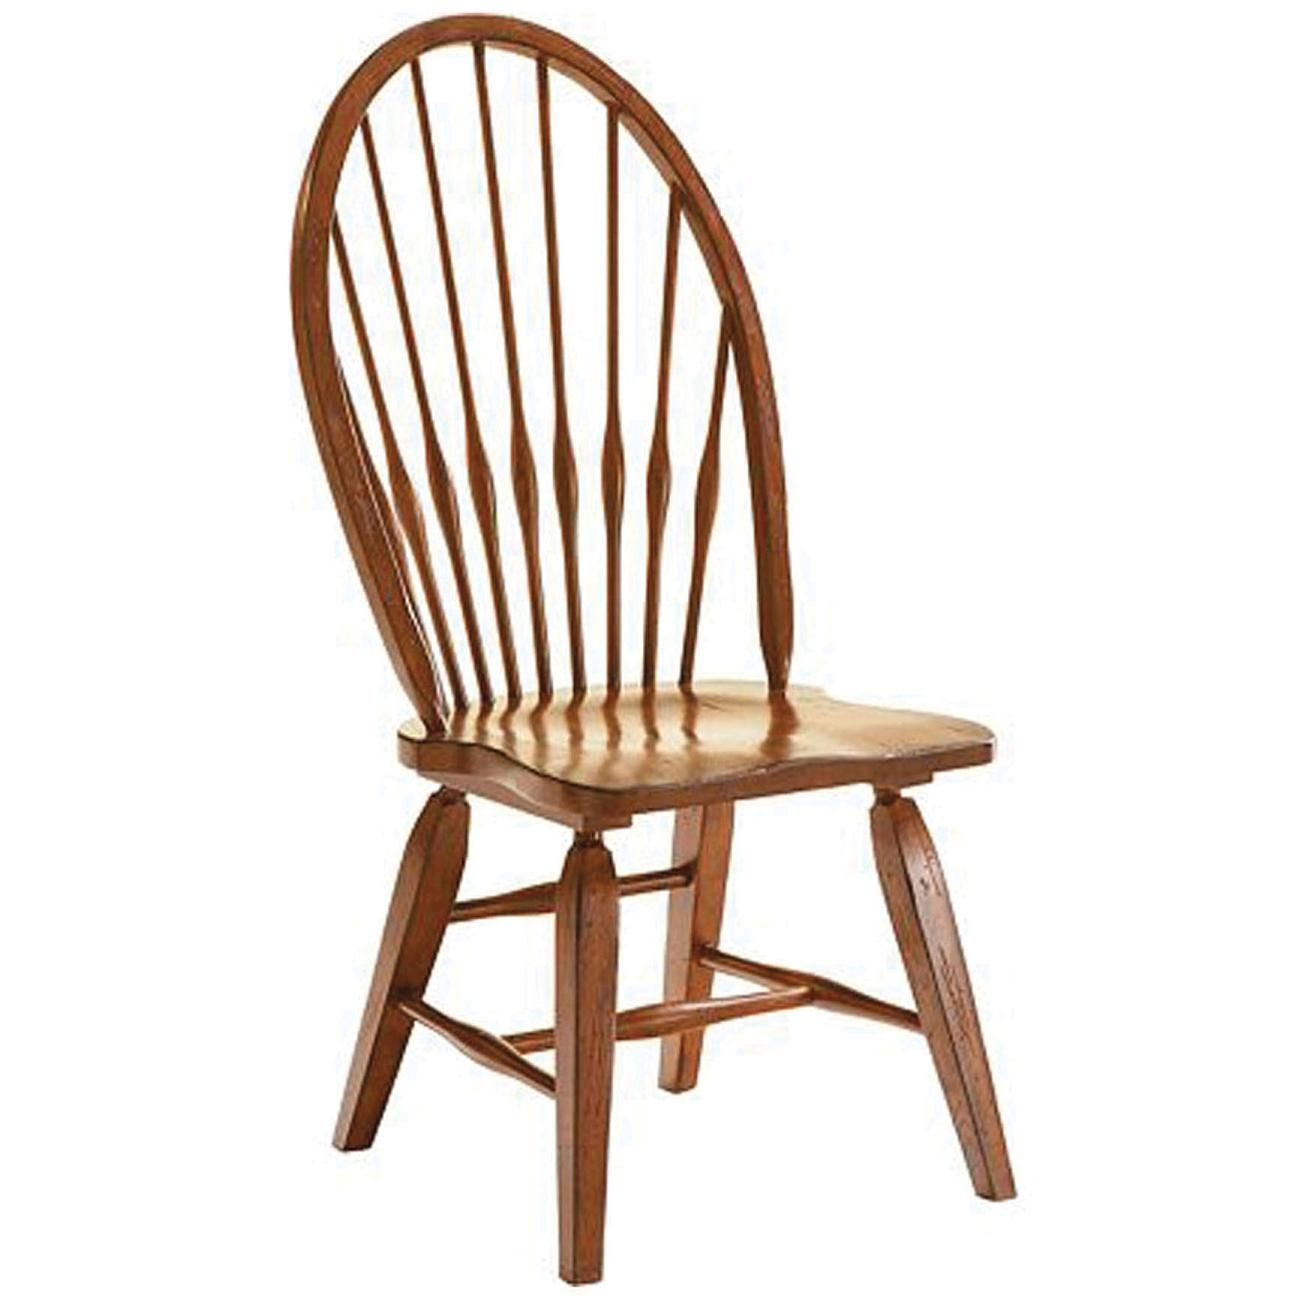 Broyhill Attic Heirlooms Windsor Side Chair In Rustic Oak Set Of 2 Side Chairs Dining Broyhill Furniture Solid Wood Dining Chairs